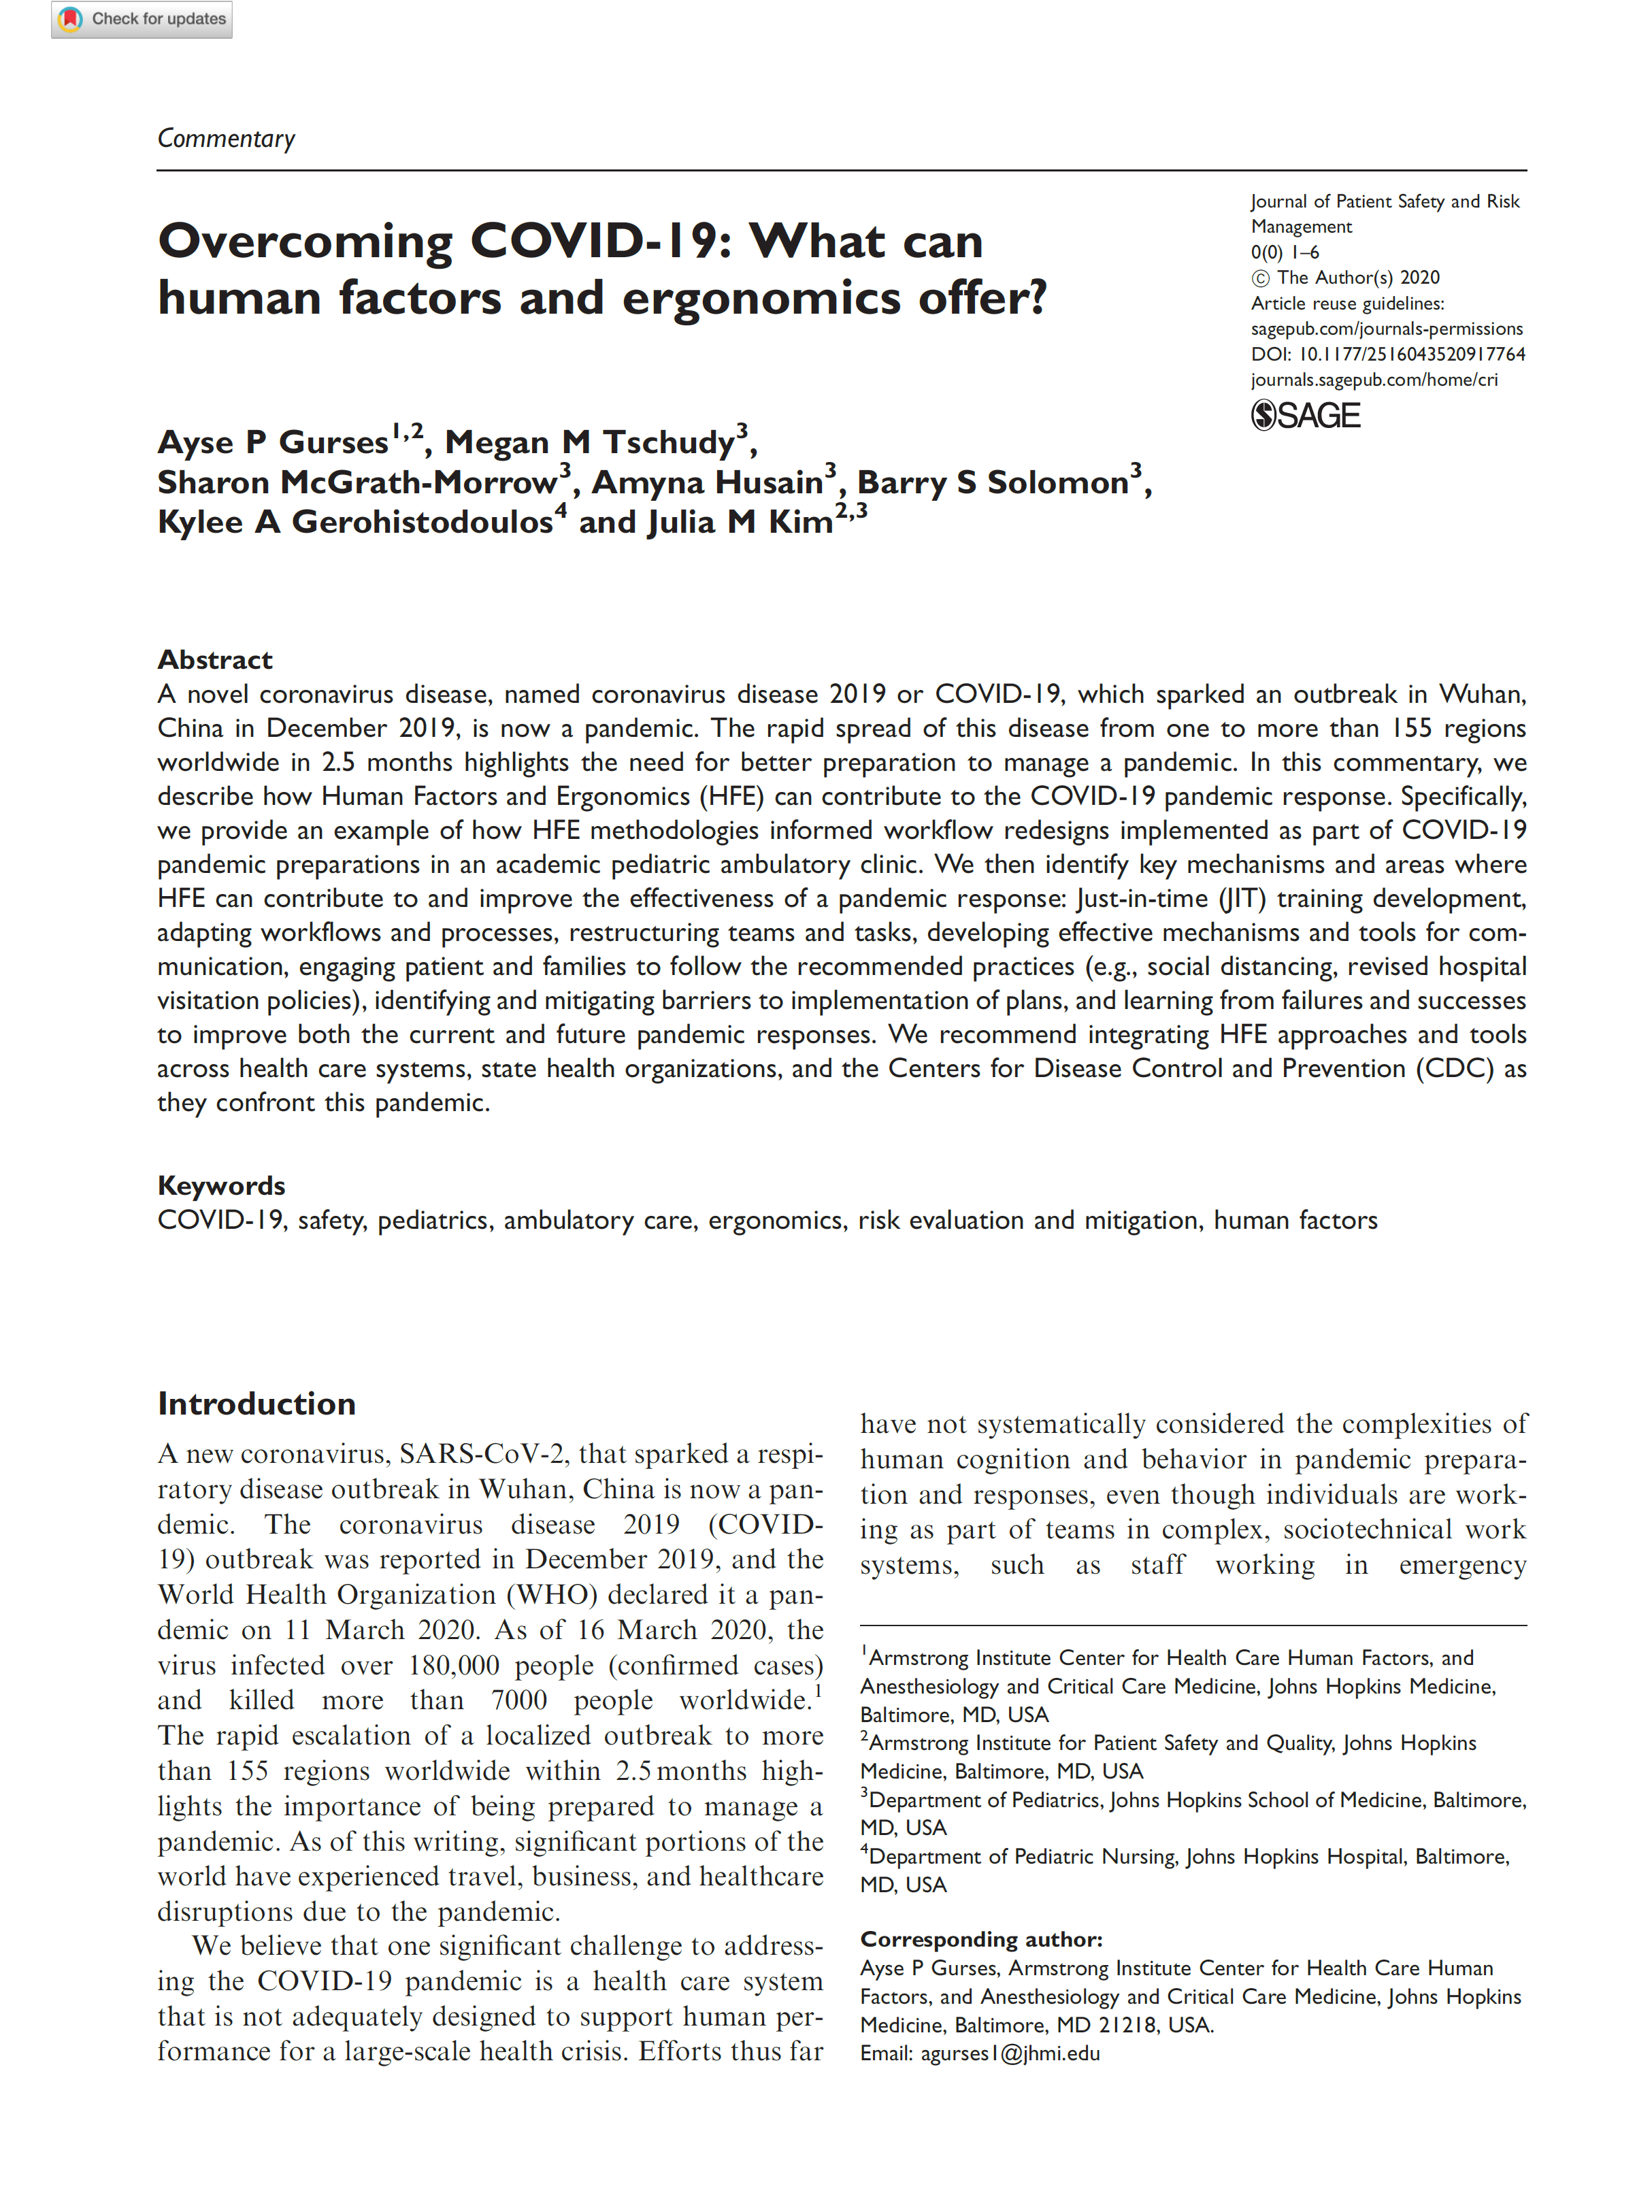 Overcoming COVID19: What can human factors and ergonomics offer?